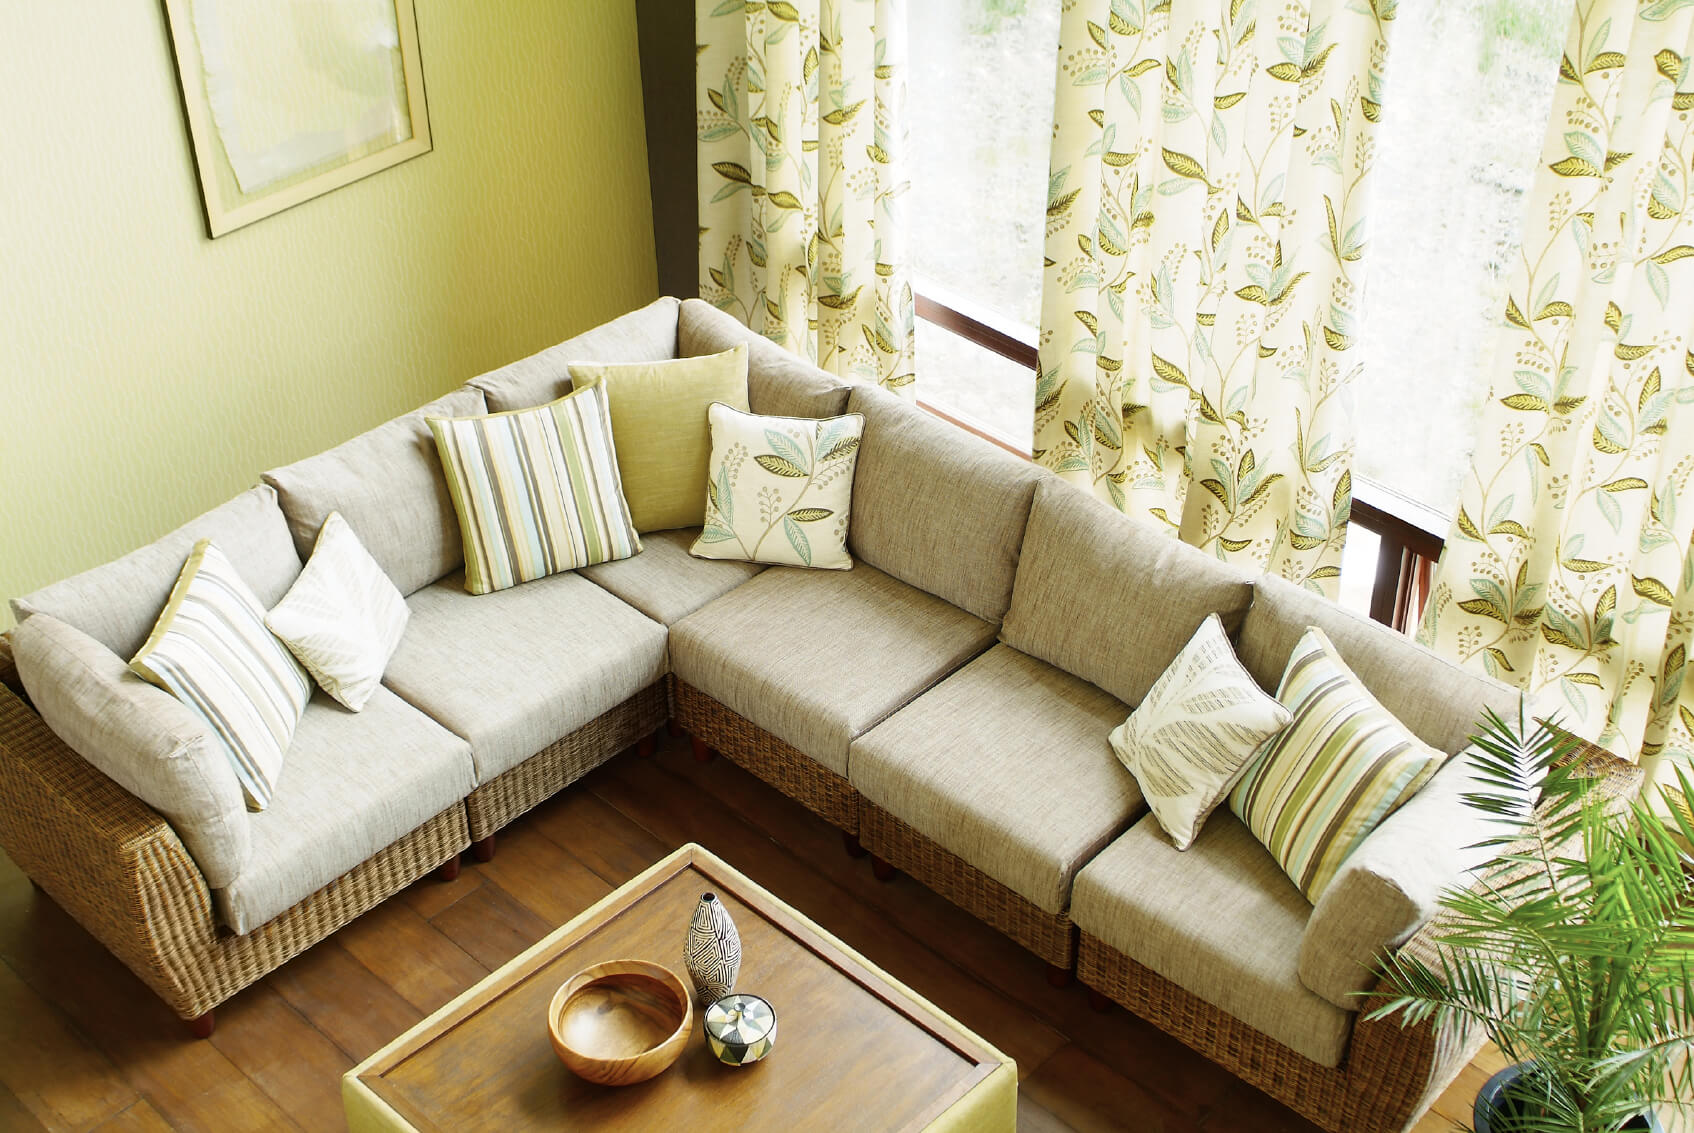 53 cozy small living room interior designs small spaces - Furniture living room design ...